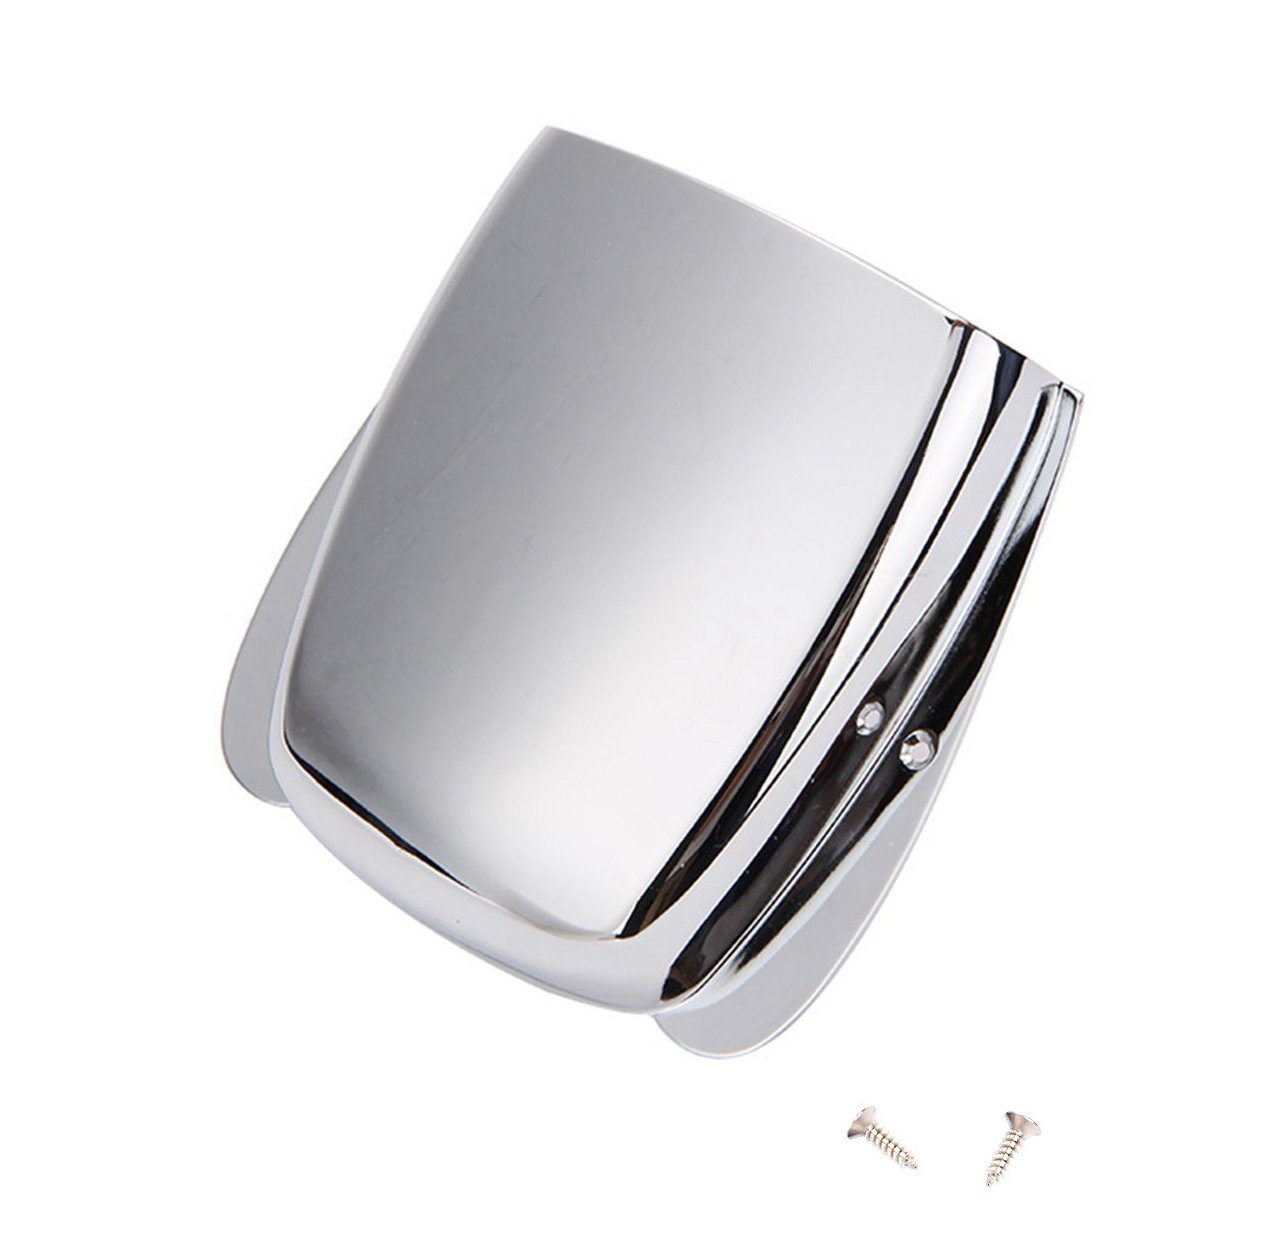 Timiy Silver Bass Electric Guitar Parts Stainless Steel Guitar Bridge Plate Cover with Screws